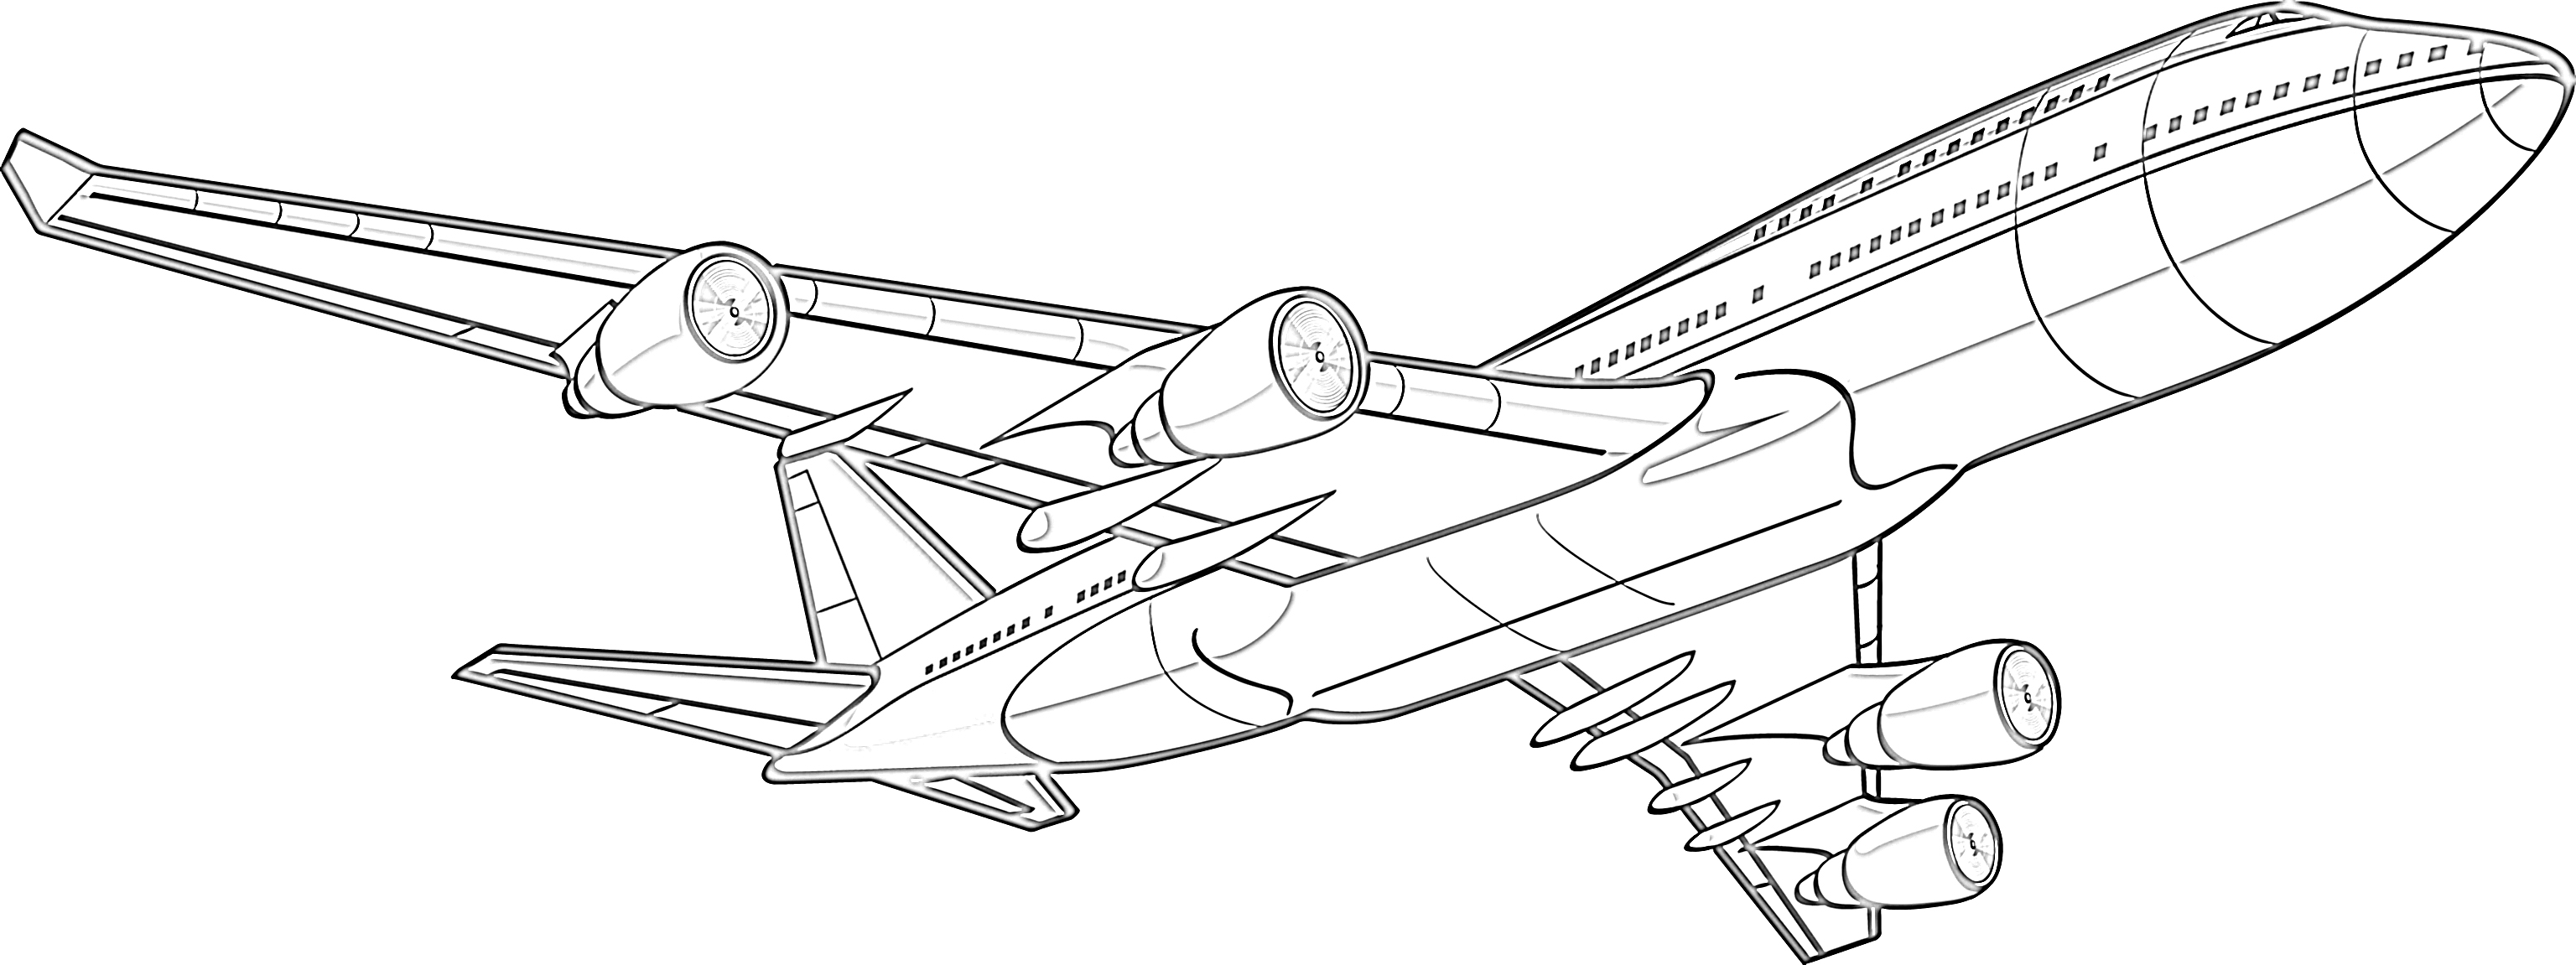 plane coloring sheets print download the sophisticated transportation of coloring plane sheets 1 1